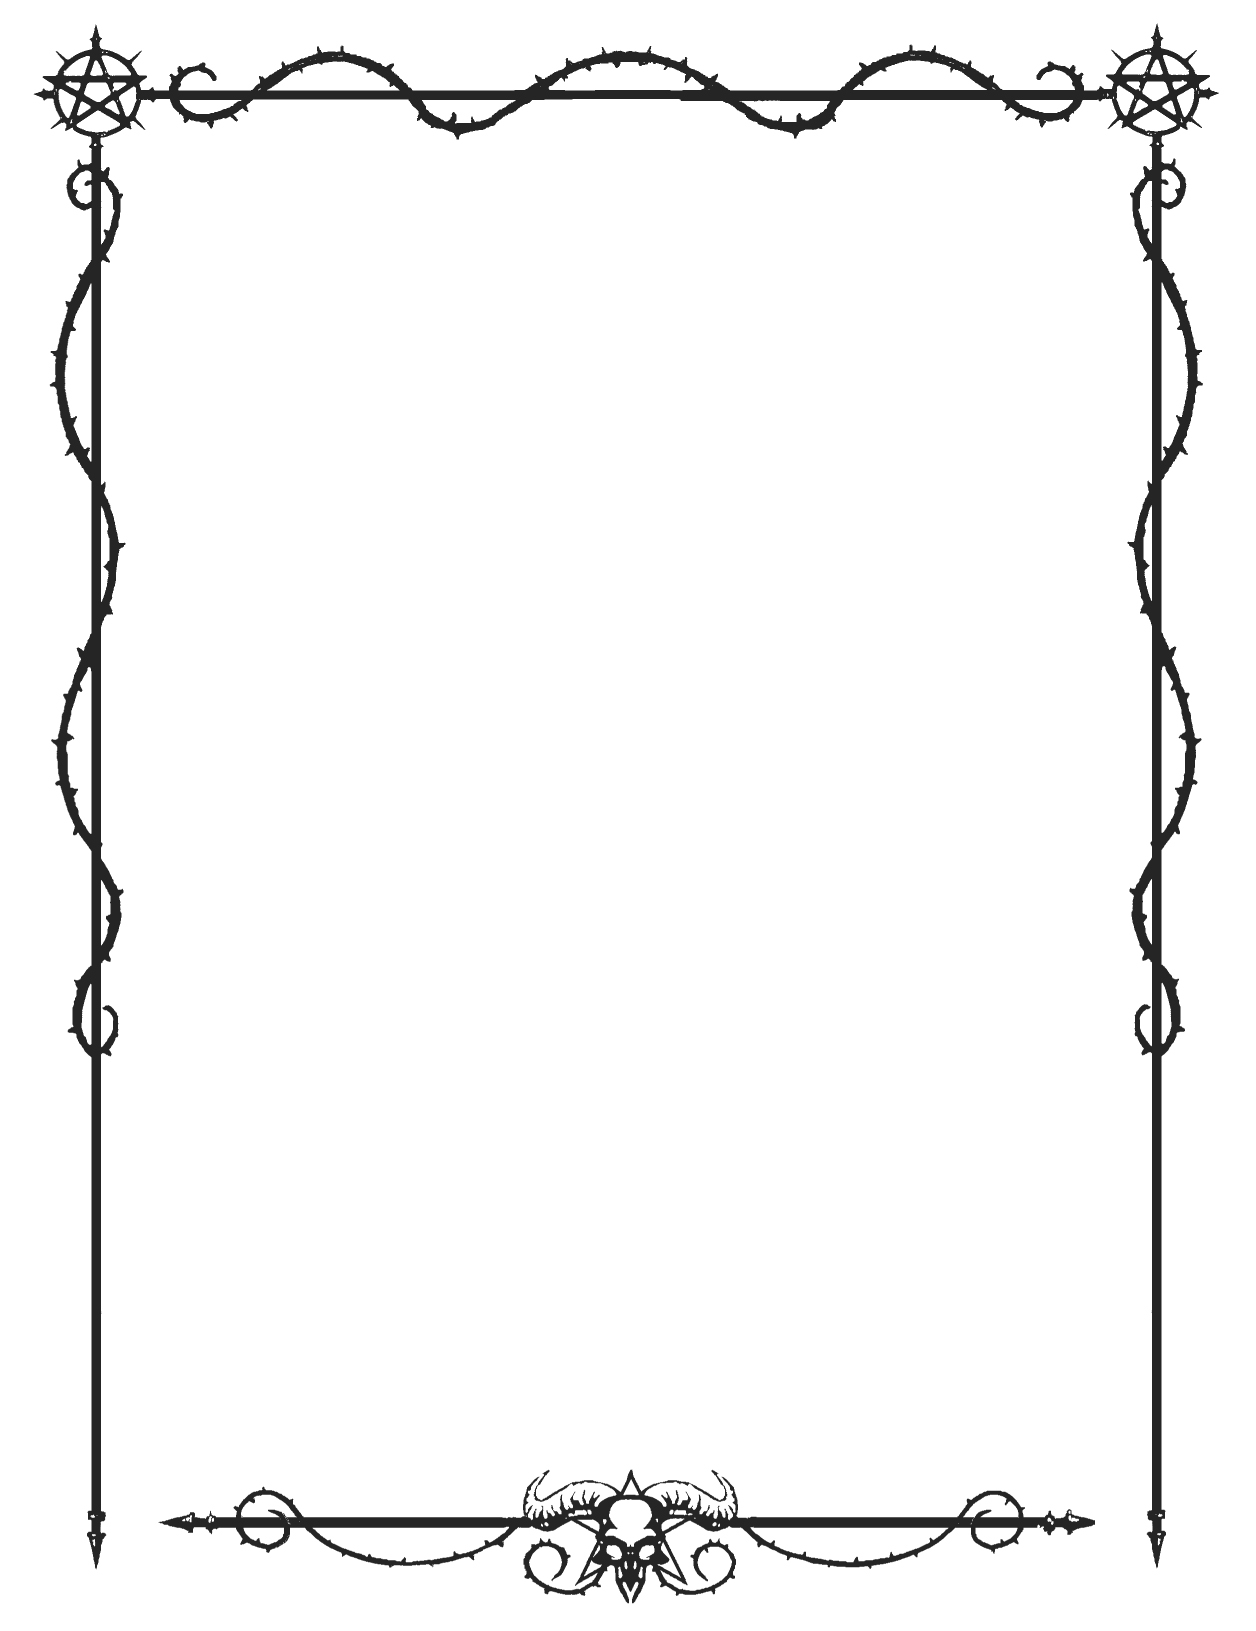 Free Page Border Download Free Clip Art Free Clip Art On